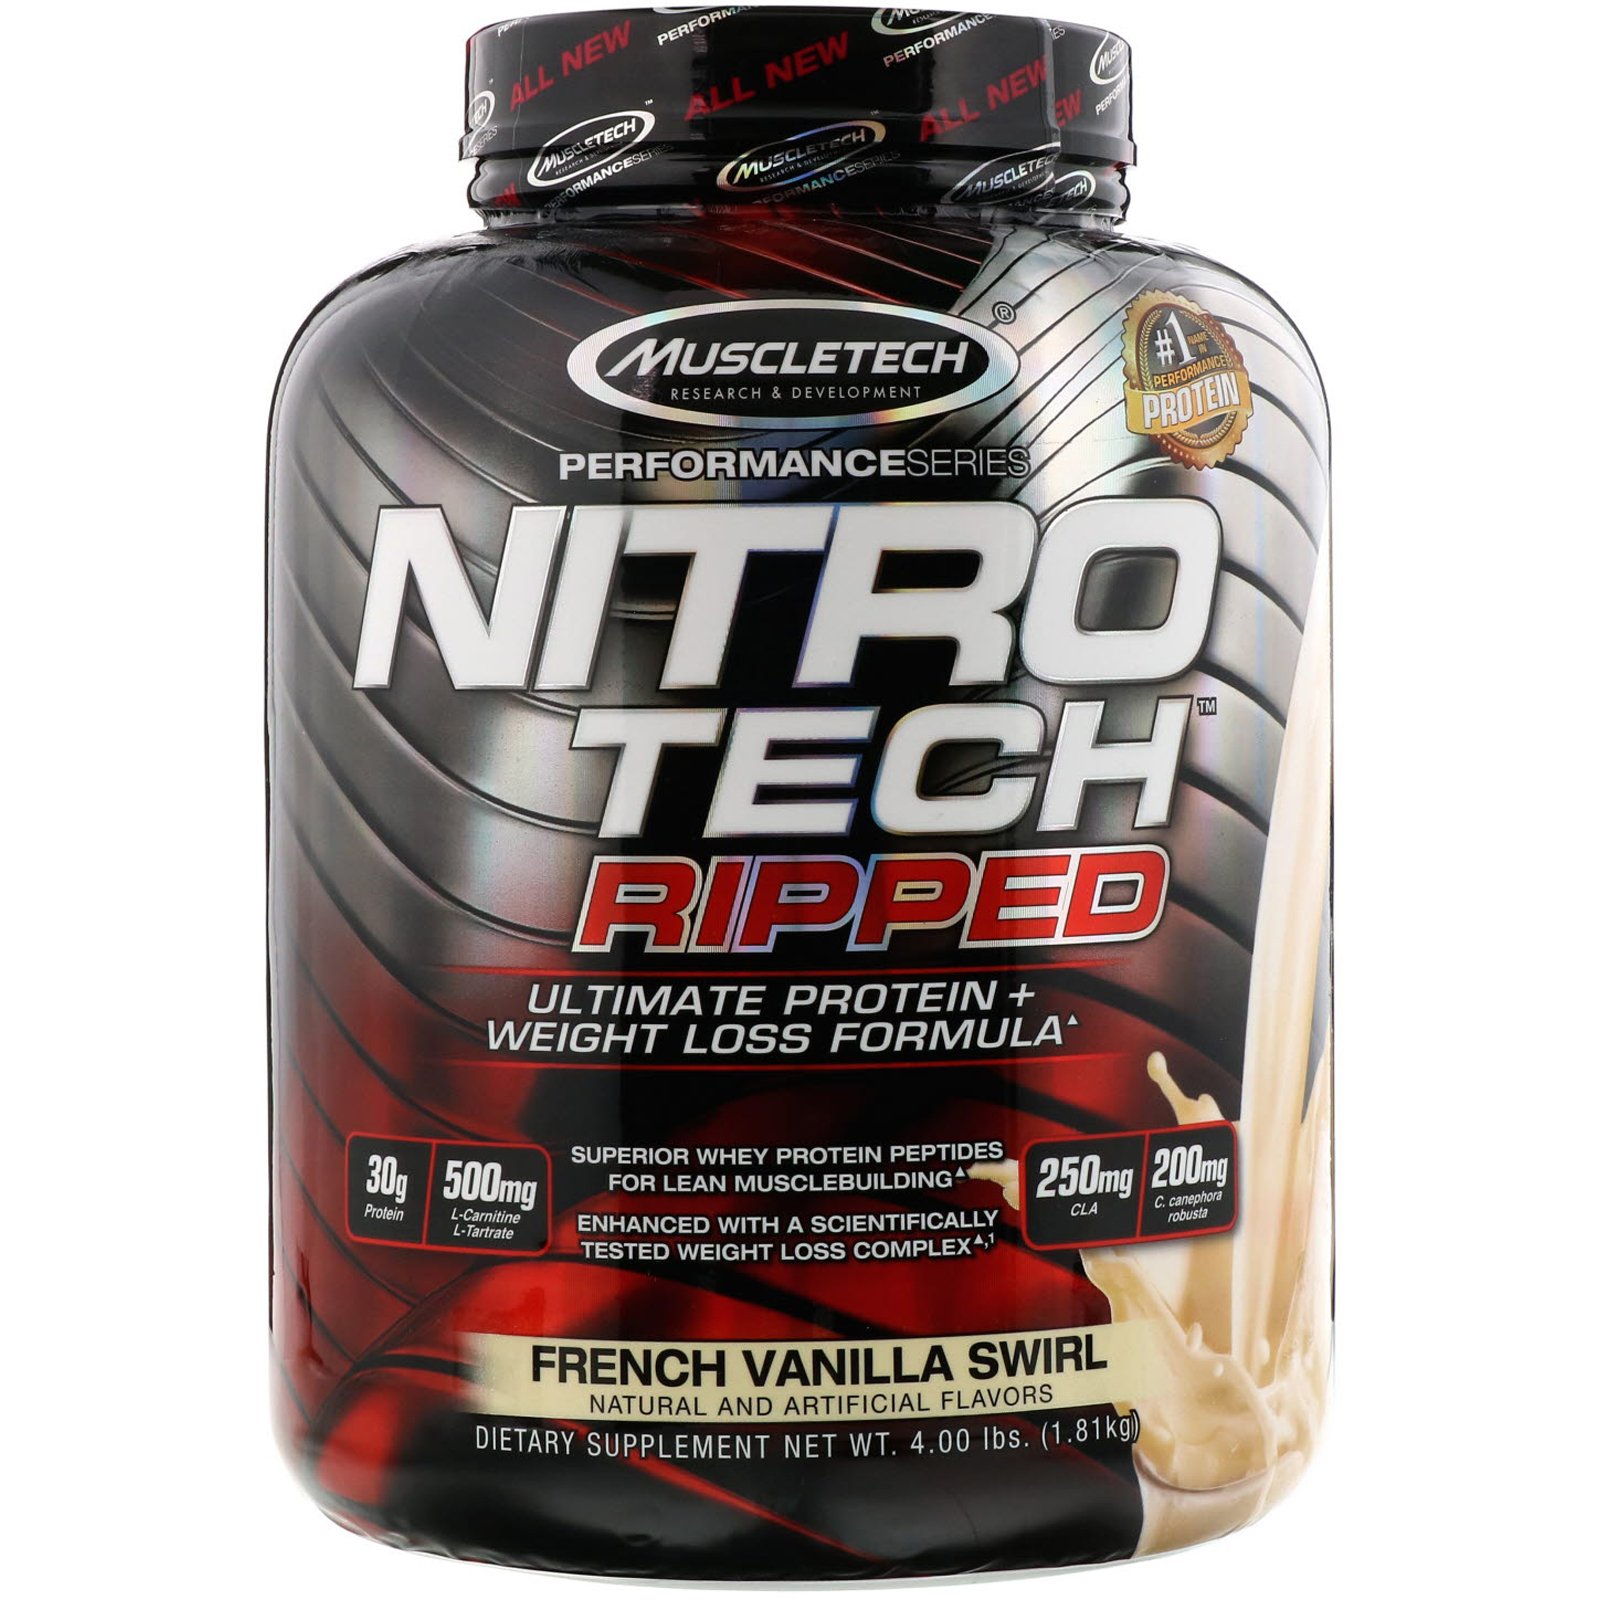 Muscletech, Nitro Tech Ripped, Ultimate Protein + Weight Loss